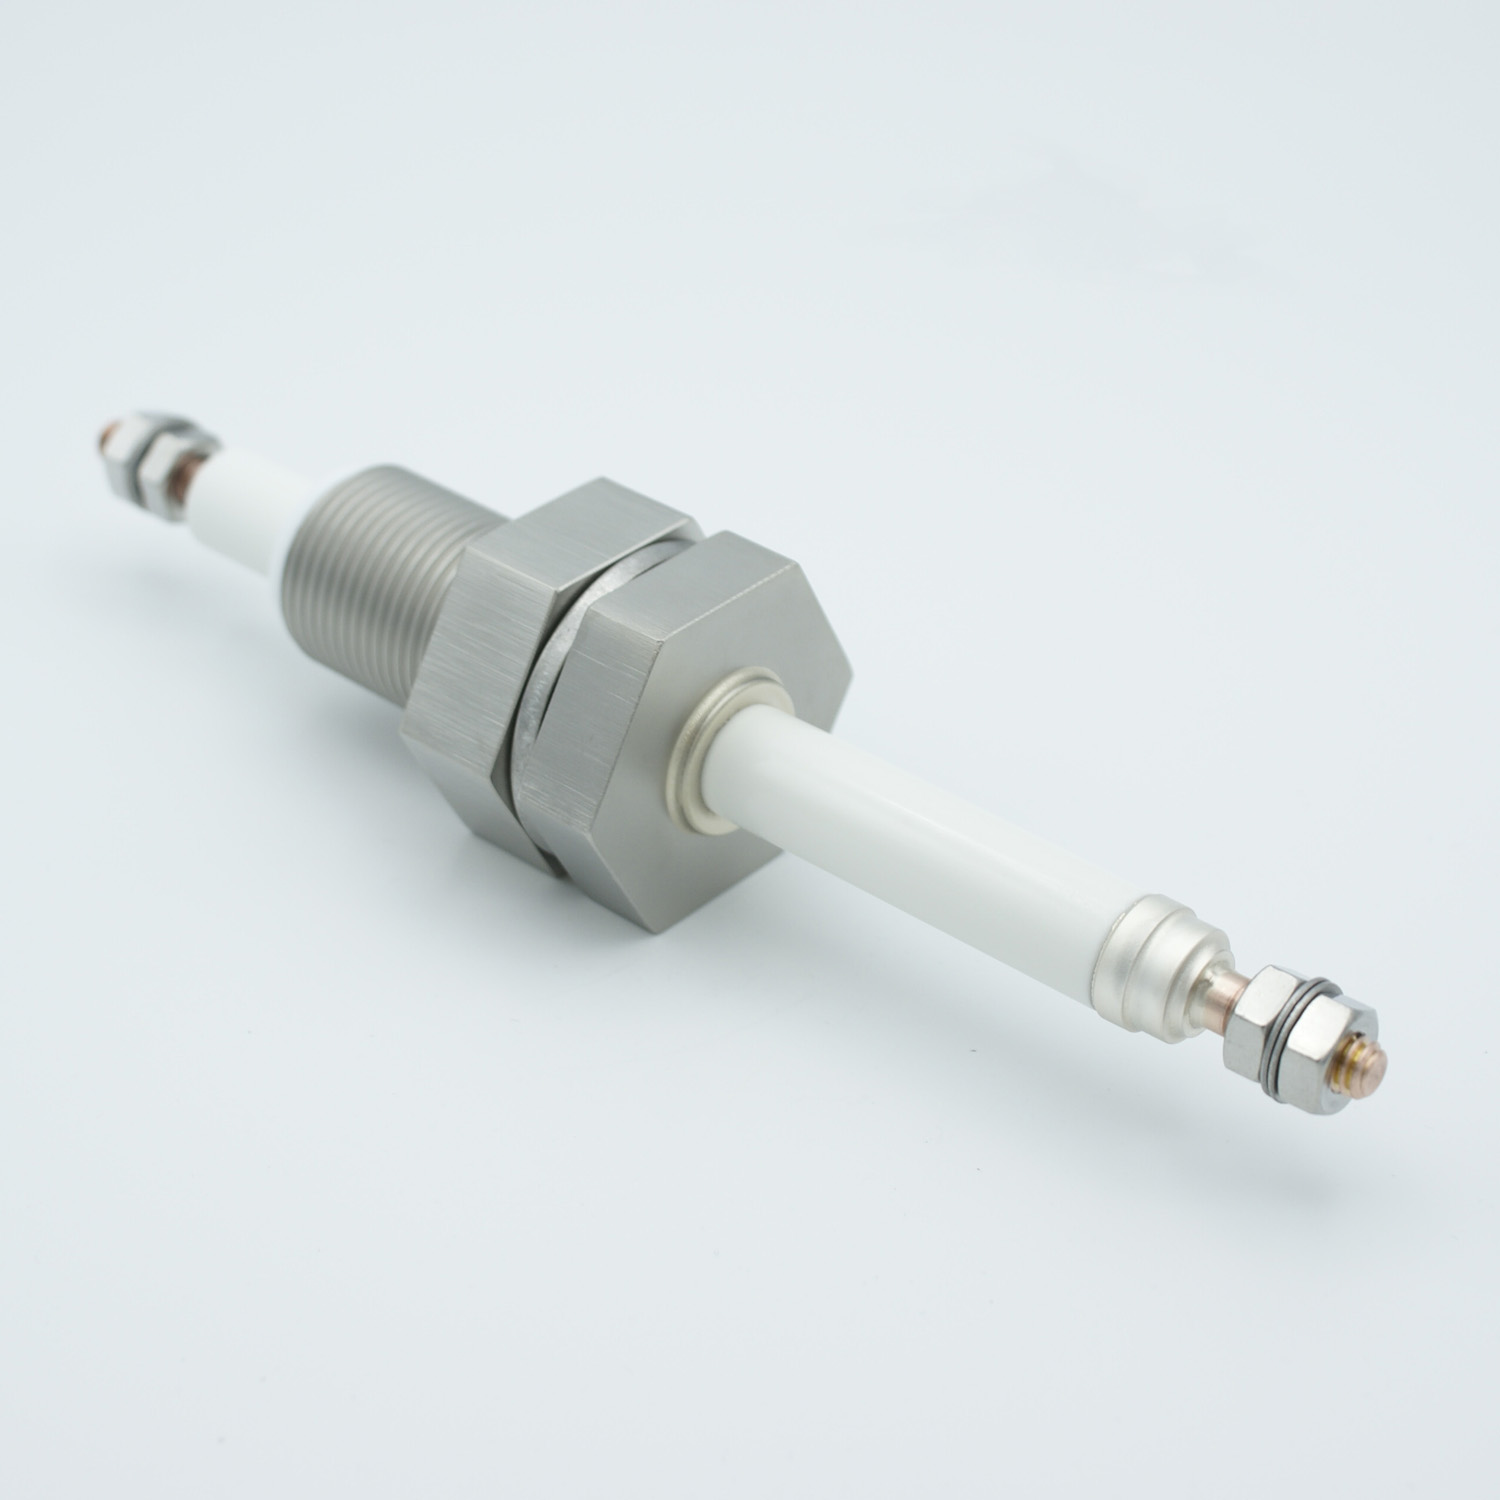 1 pin exposed high voltage feedthrough 12000V / 150 Amp. Copper conductor, 1 inch base plate fitting